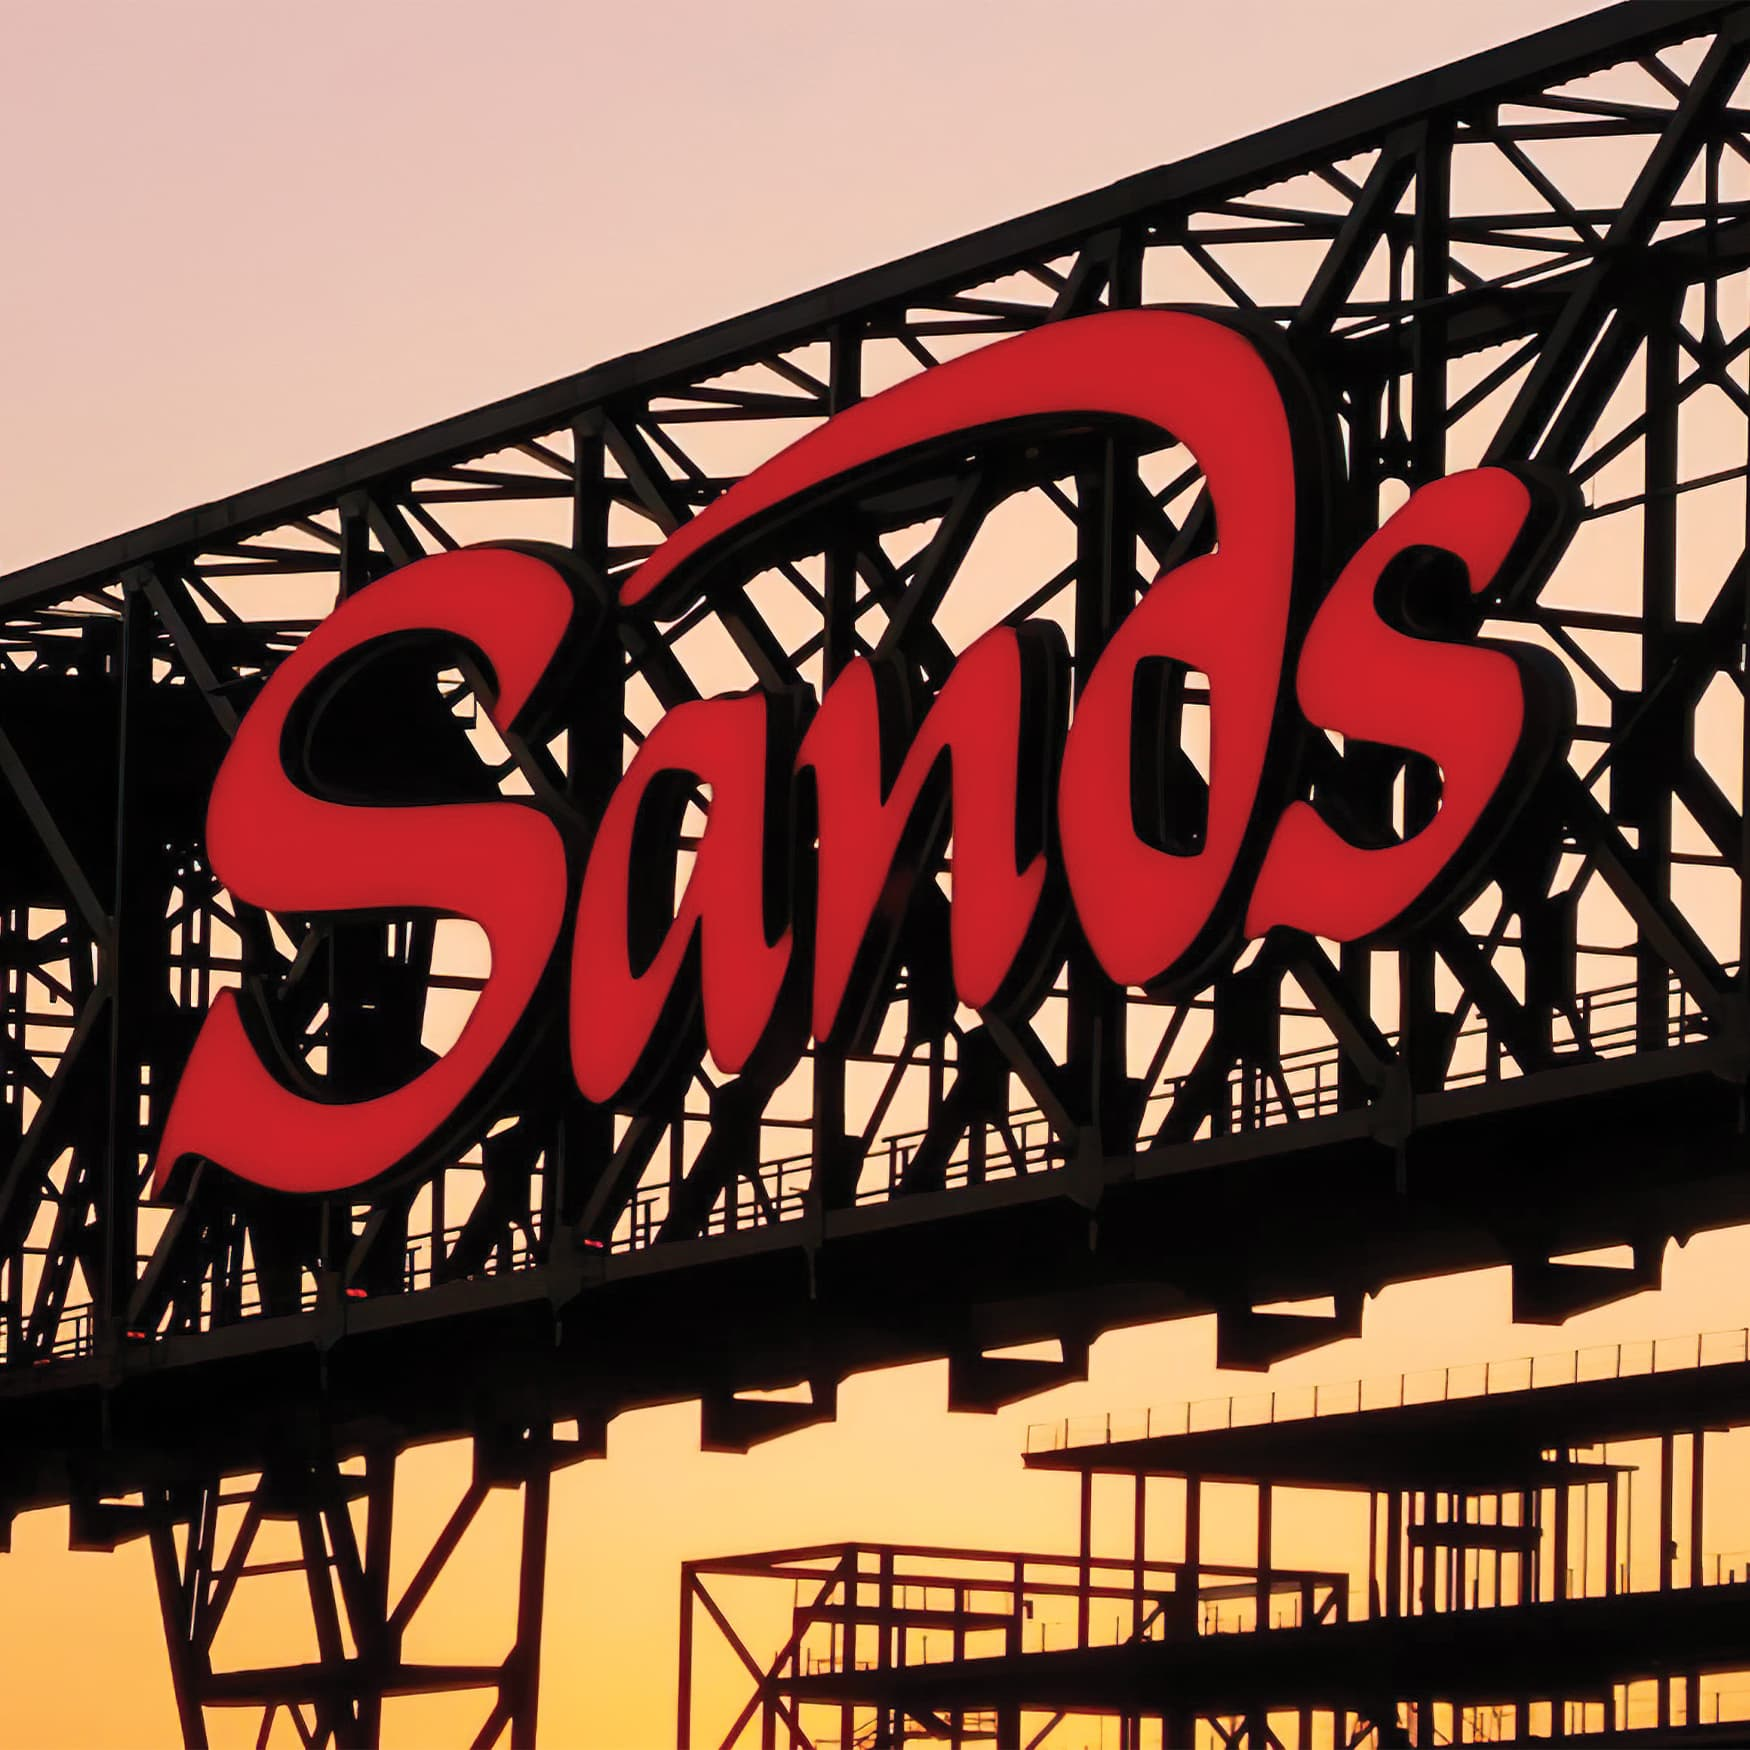 Architecturally integrated Sands Casino Resort identity sign